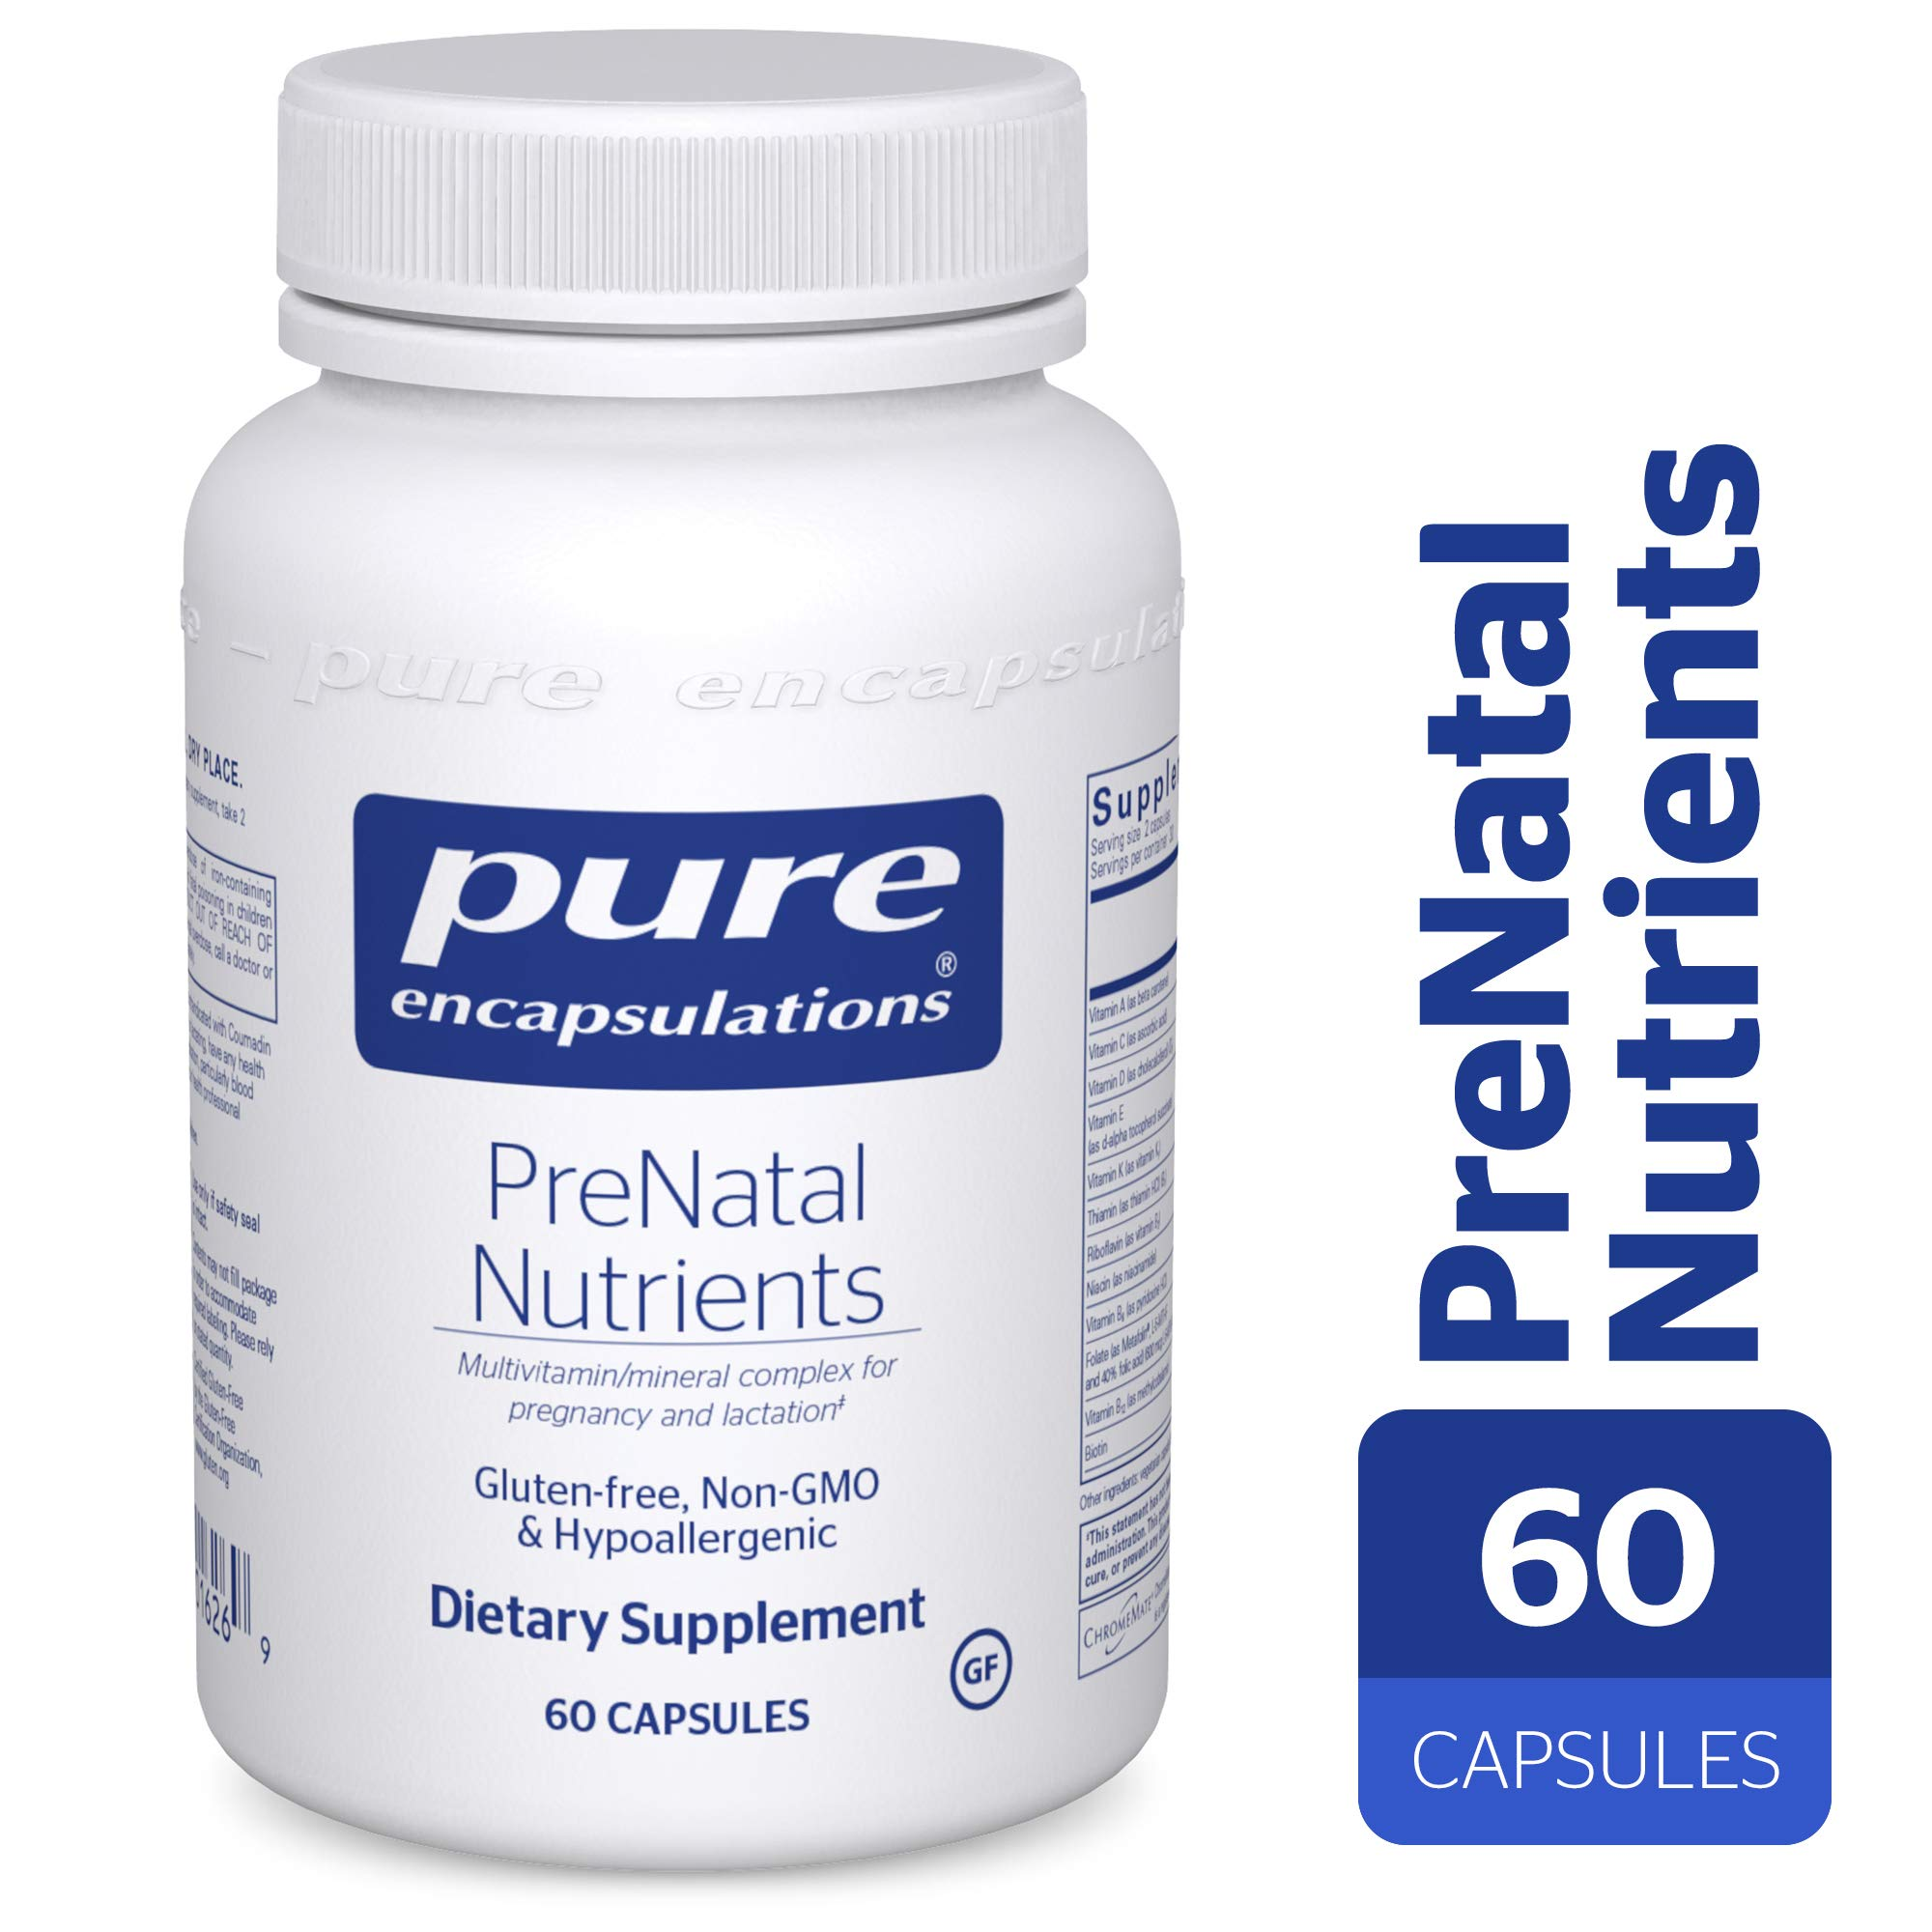 Pure Encapsulations - PreNatal Nutrients - Hypoallergenic Nutritional Support for Pregnancy and Lactation* - 60 Capsules